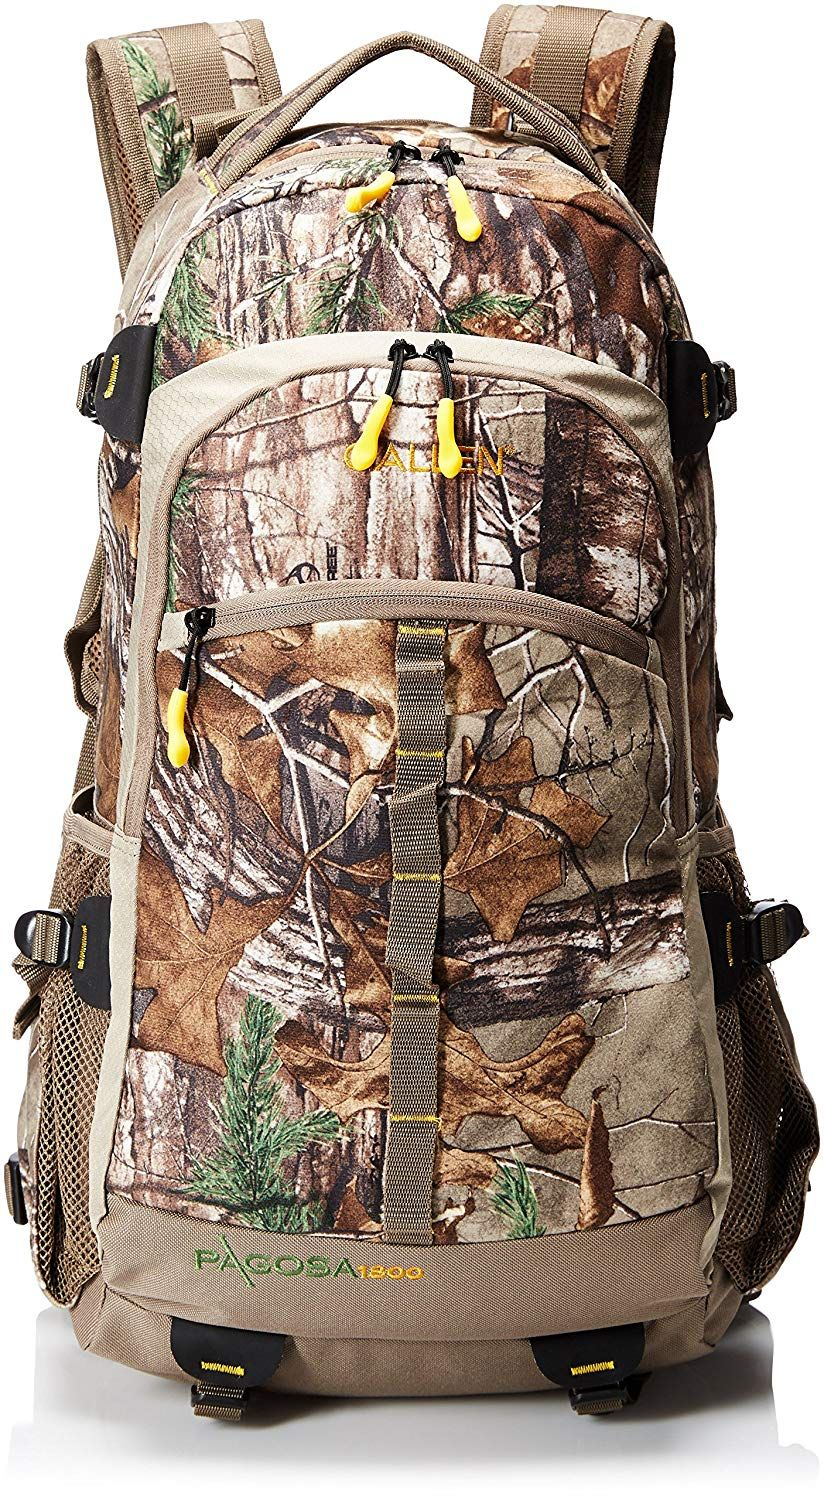 02bc889e12 The 10 Best Hunting Backpack in 2019 - Reviews and Buying Guide ...